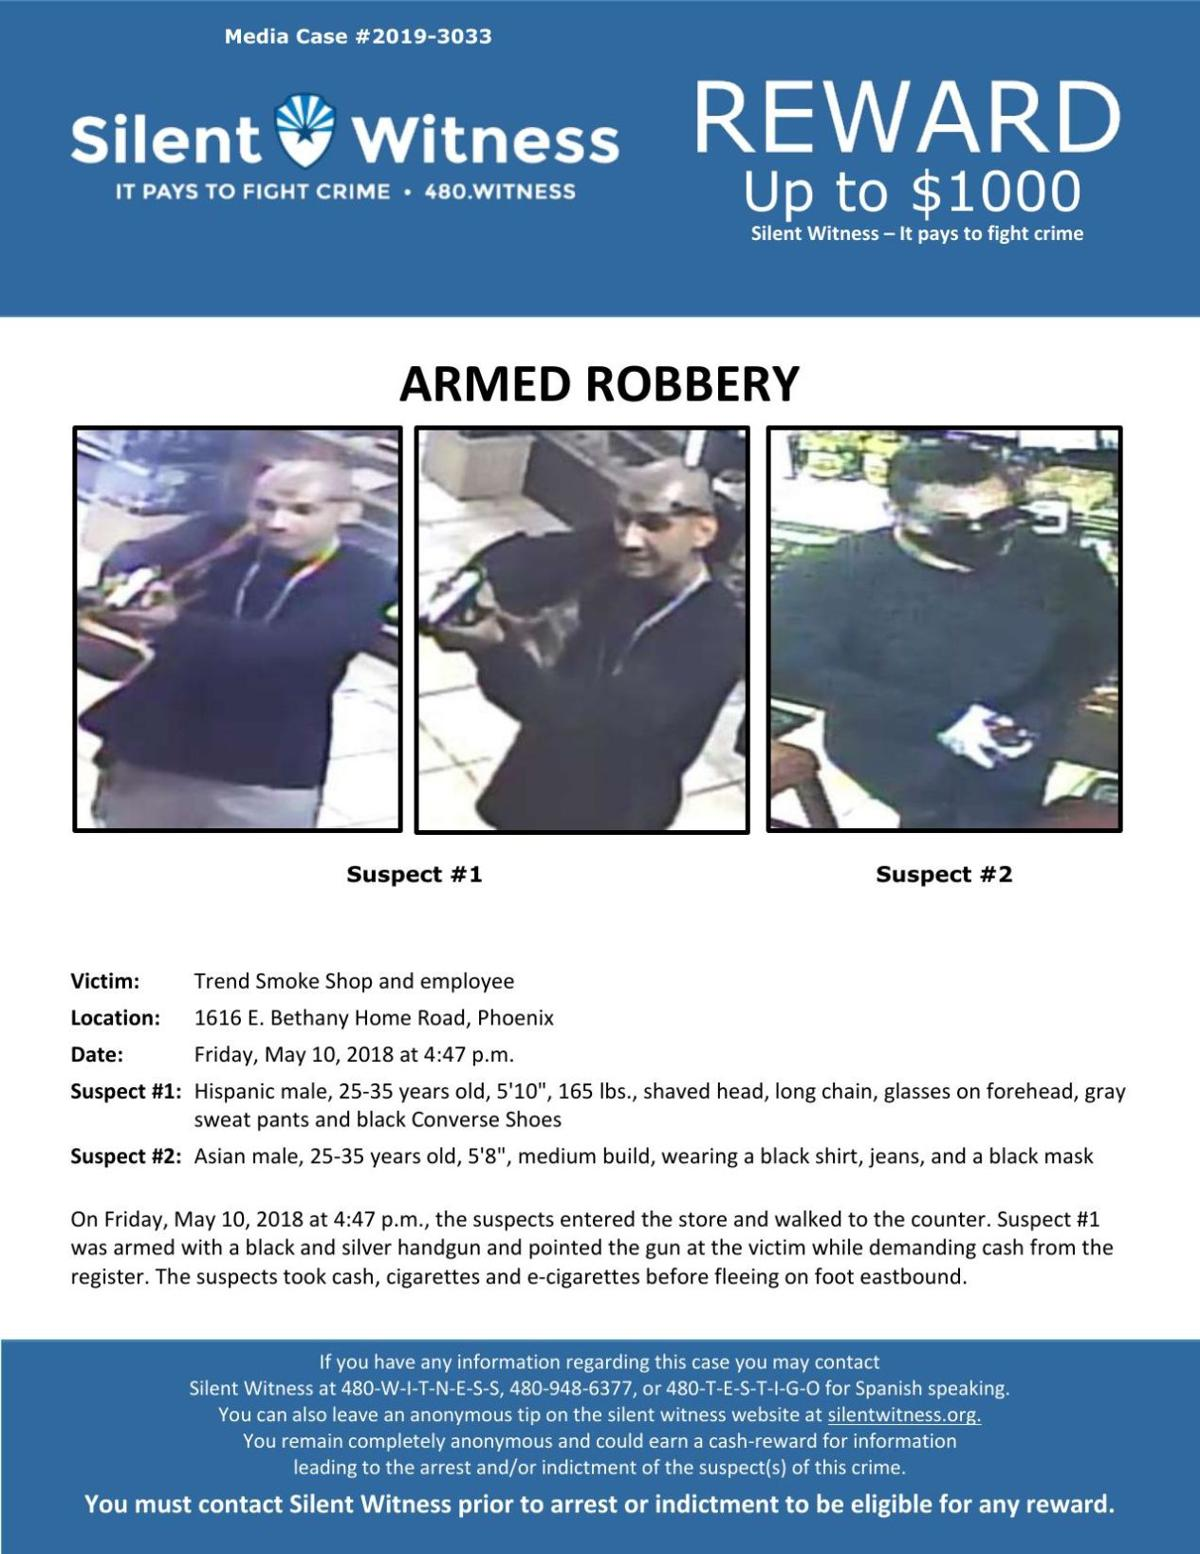 Silent Witness flyer: Trend Smoke Shop armed robbery